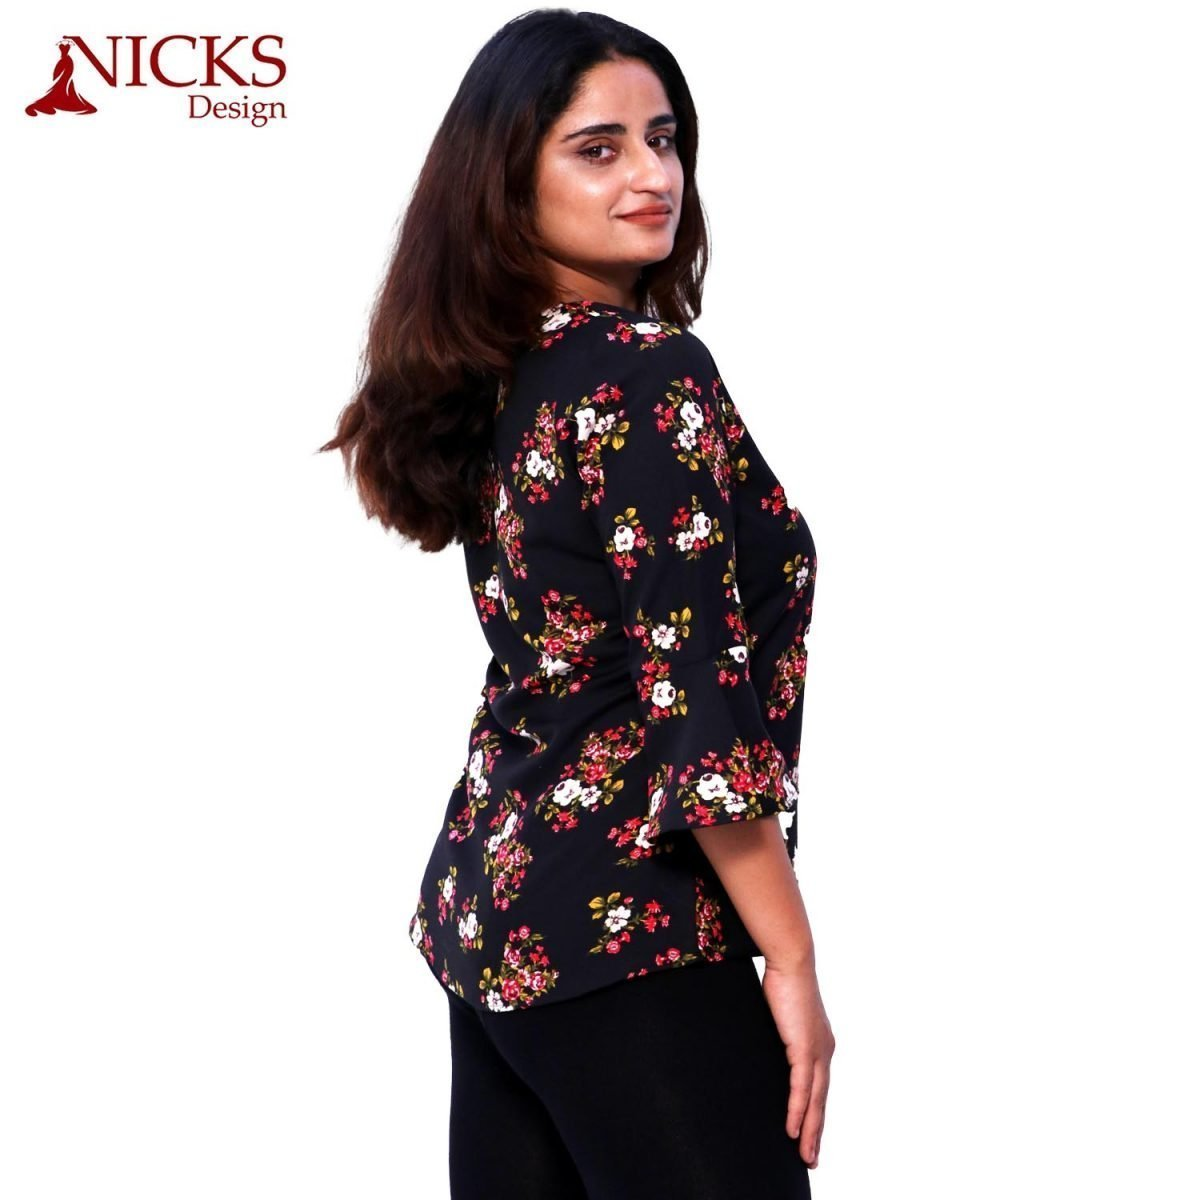 Floral Ruffle Top for gilrs